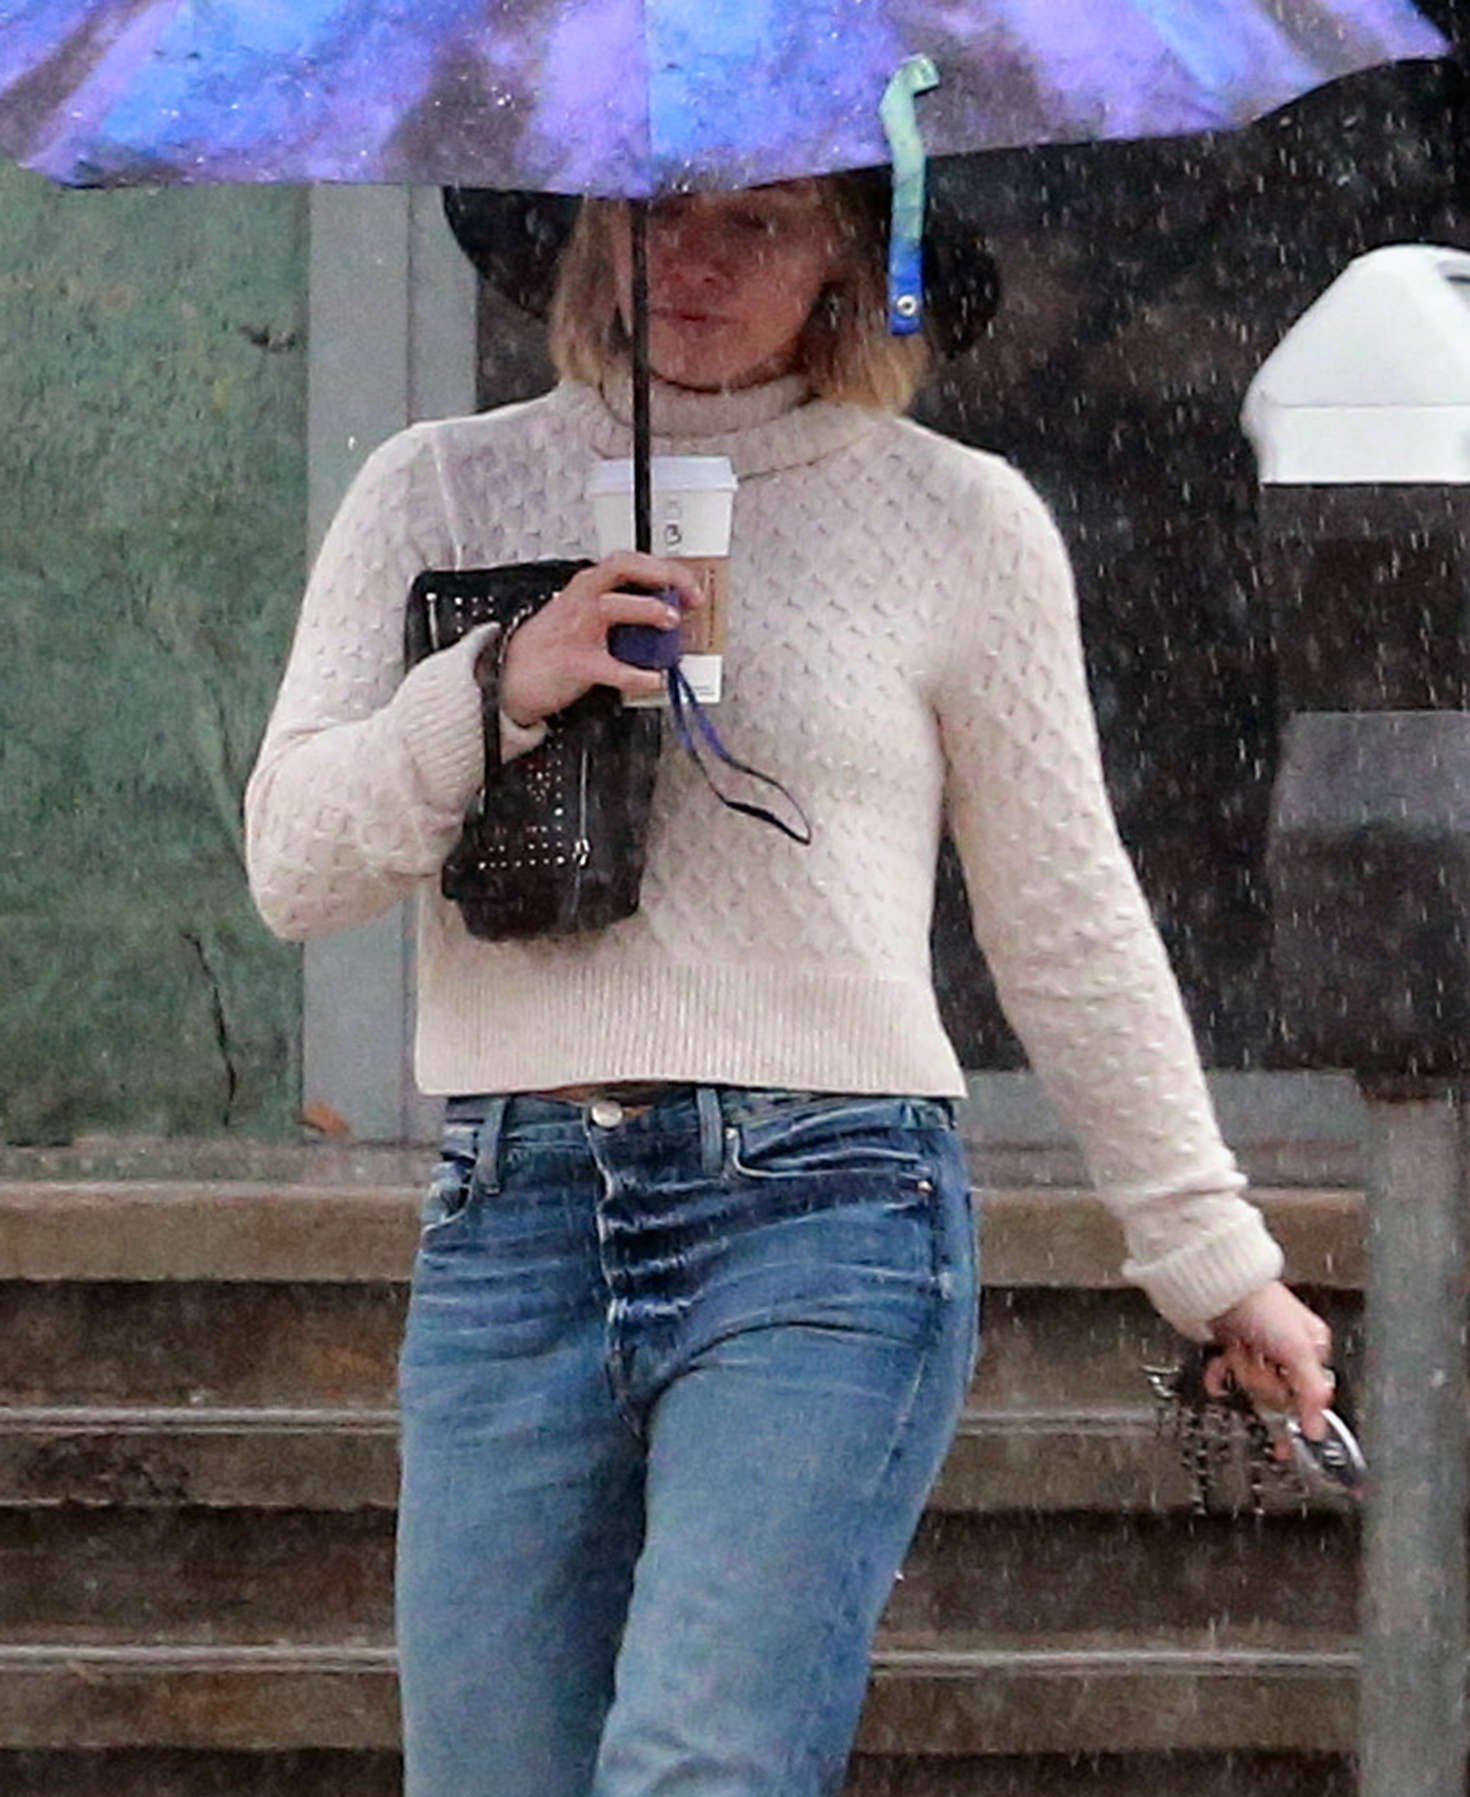 Hilary Duff 2016 : Hilary Duff in Jeans out on a rainy day -20